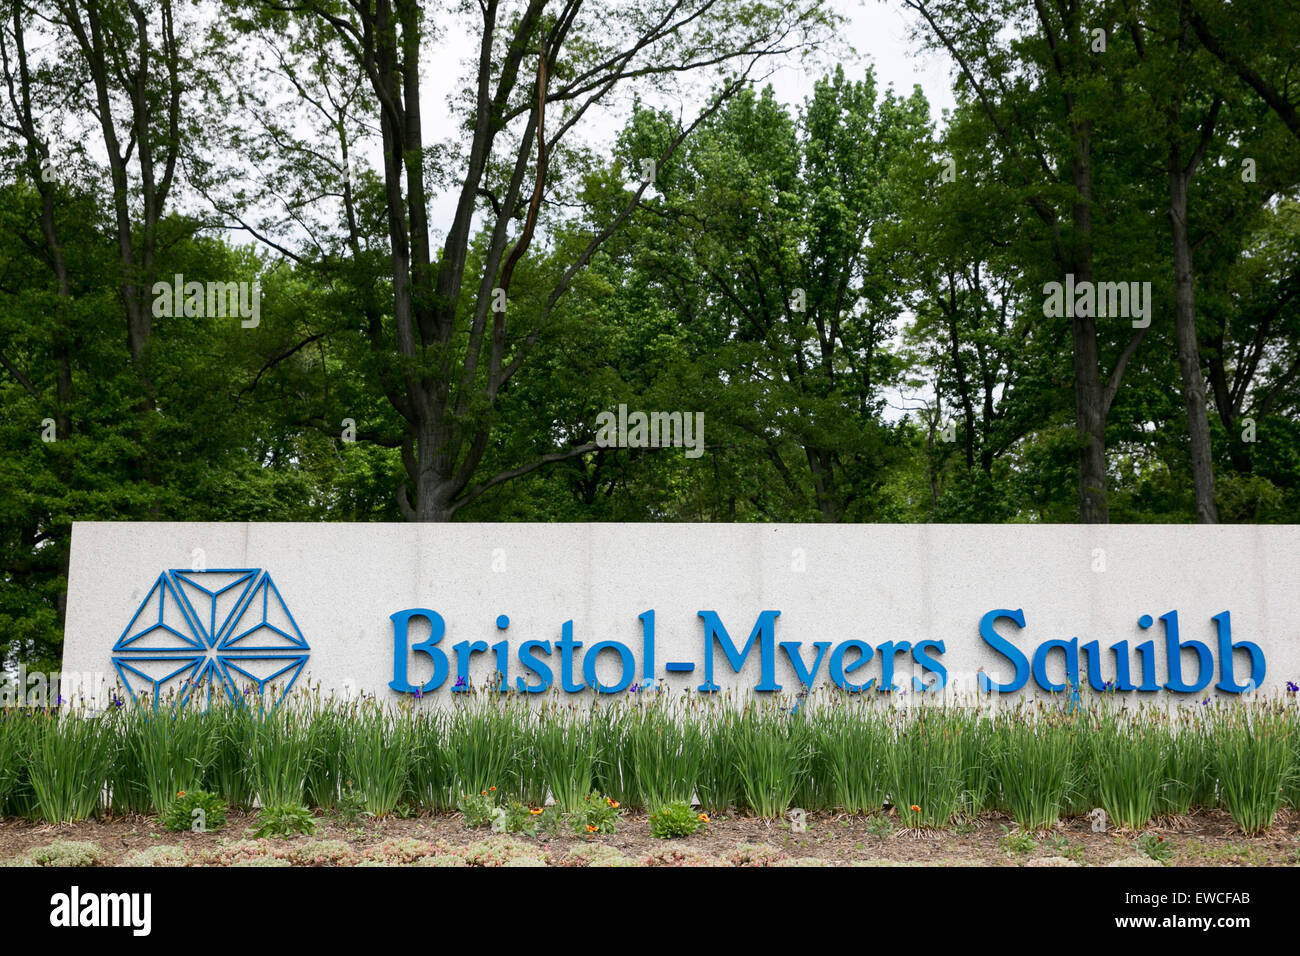 A logo sign outside of a facility occupied by Bristol-Myers Squibb in New Brunswick, New Jersey. - Stock Image